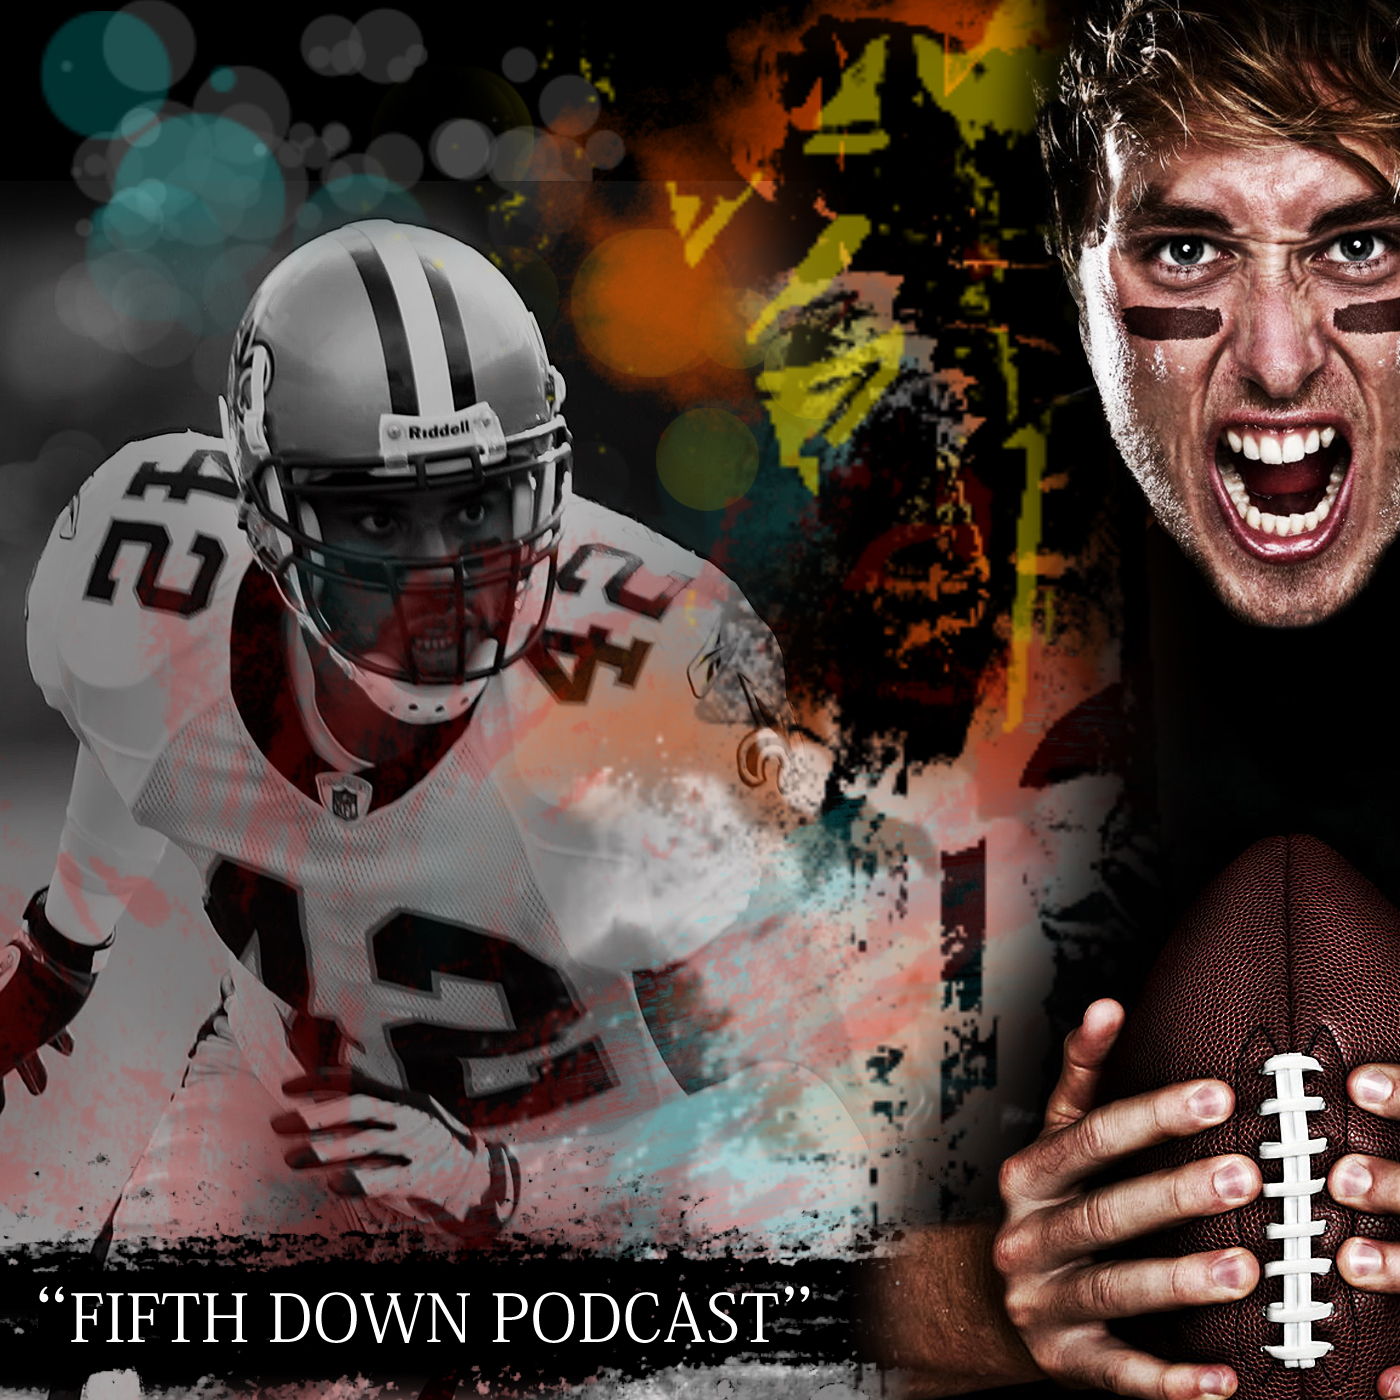 Fifth Down Podcast